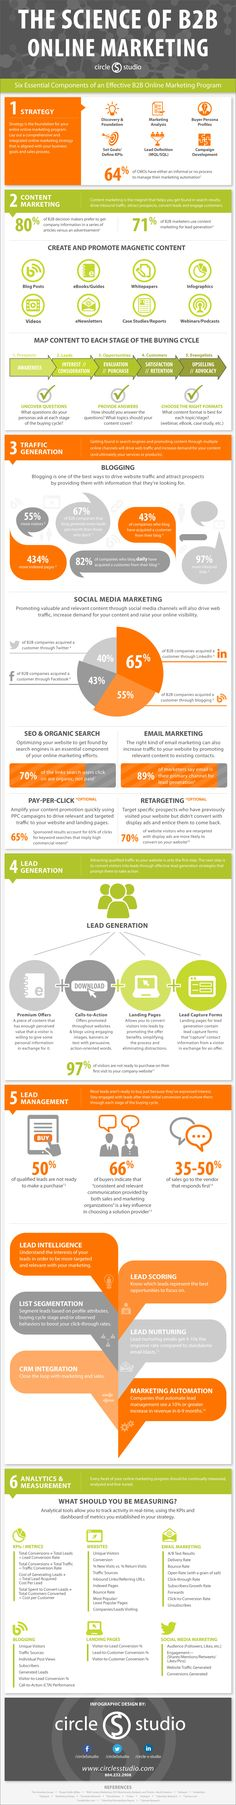 The Science of B2B Online Marketing (Infographic)